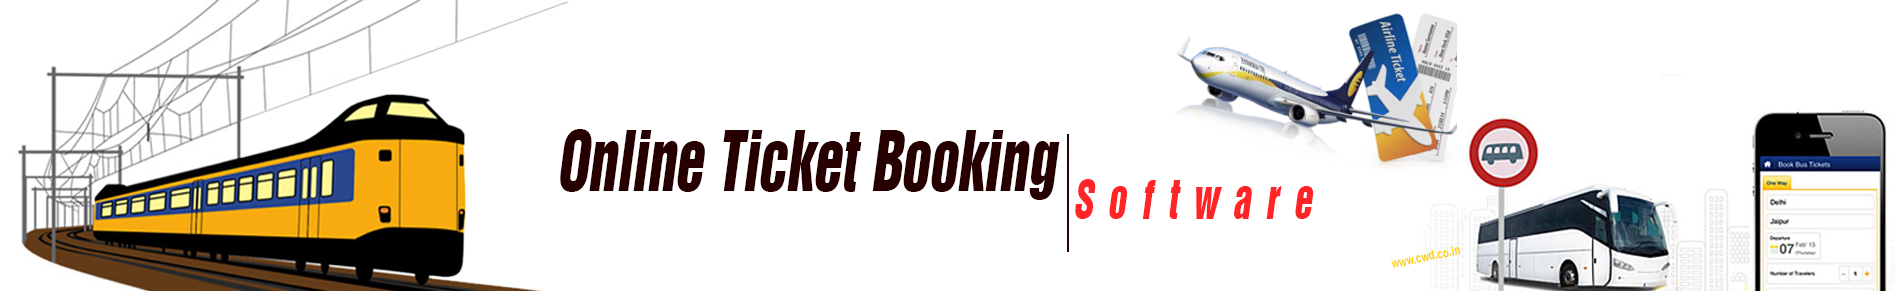 Online Ticket Booking Software in Chennai | Mobile Ticket Booking Software Development company in Chennai - cwd.co.in